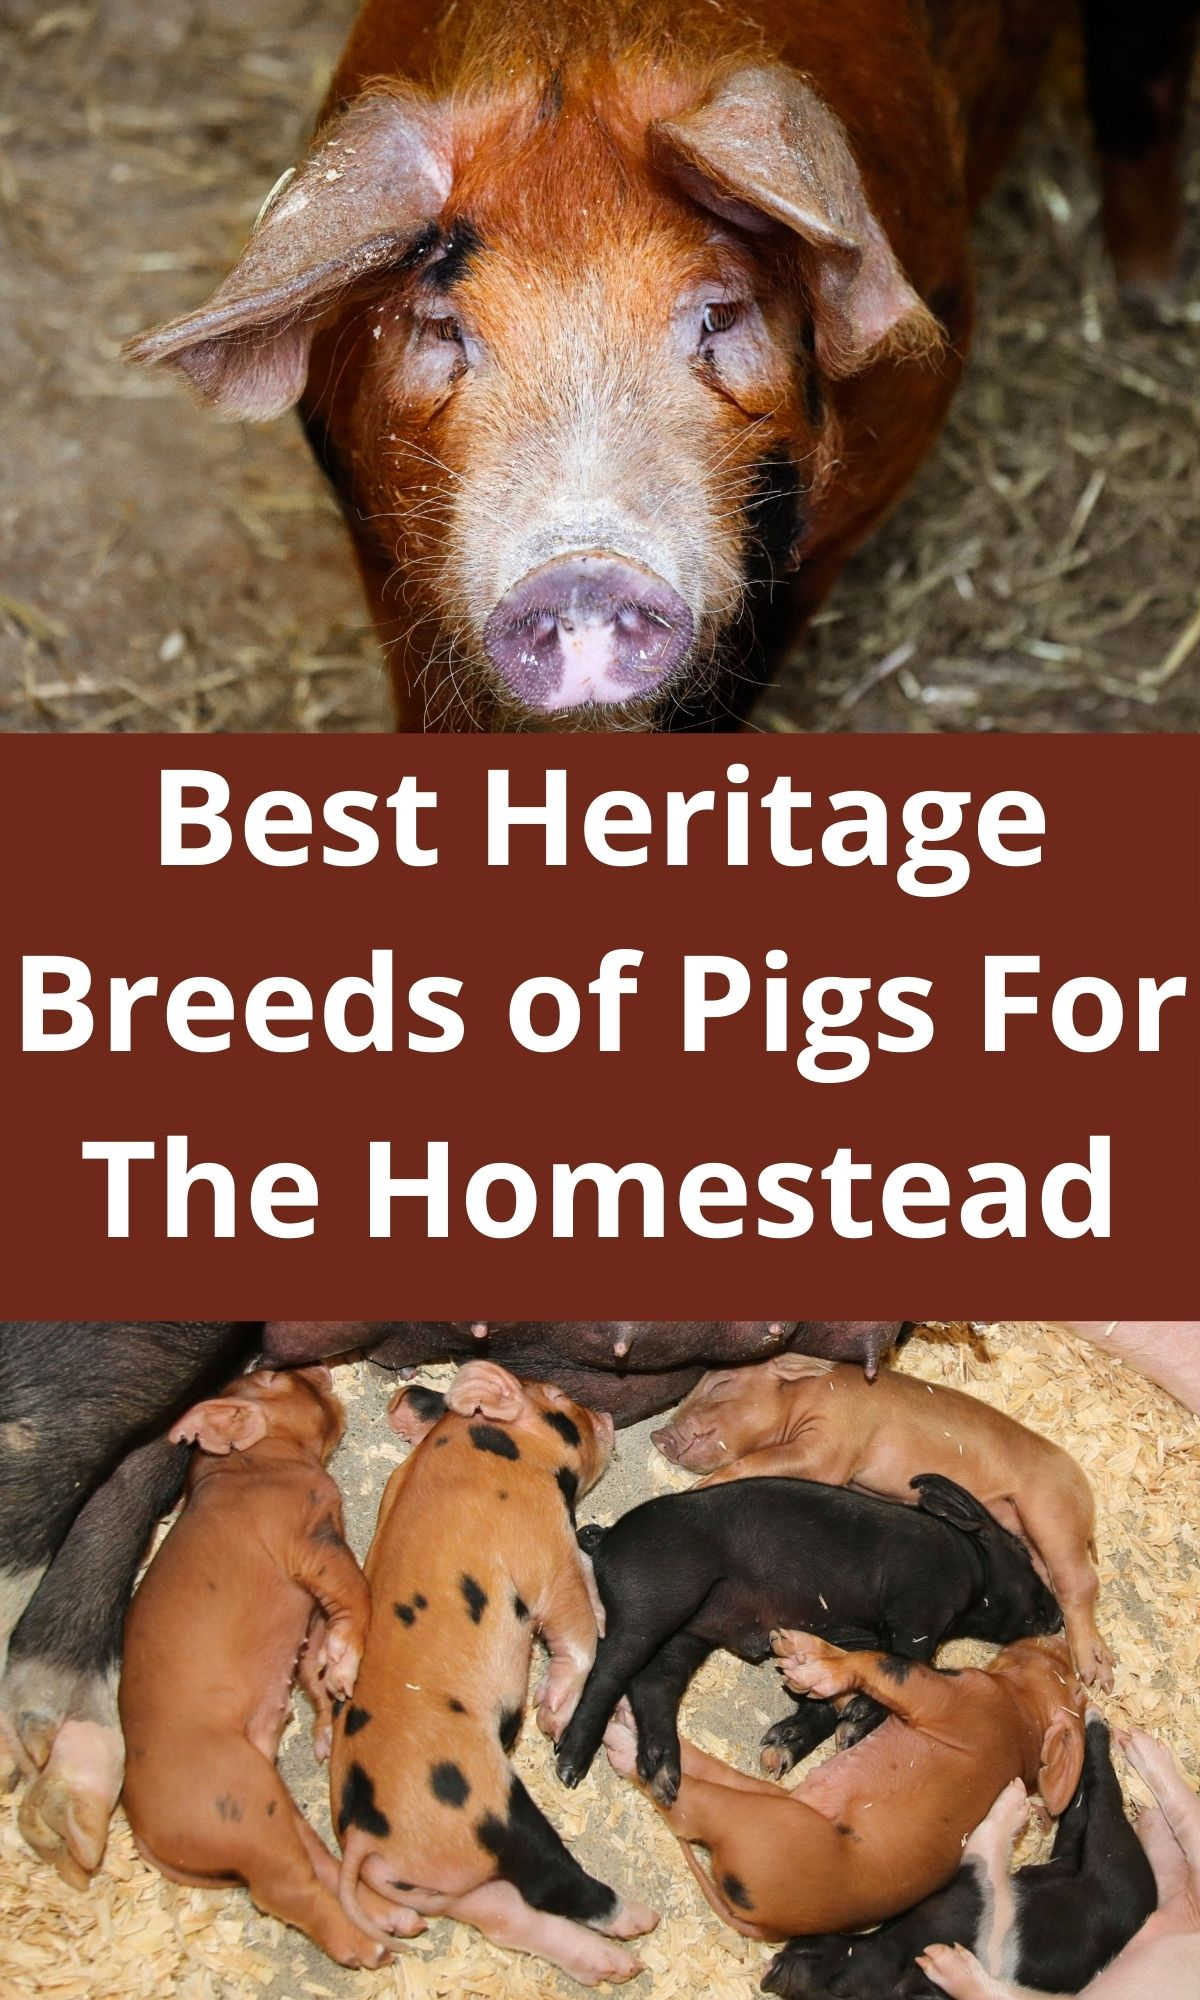 red wattle sow and piglets for heritage breeds of pigs PIN